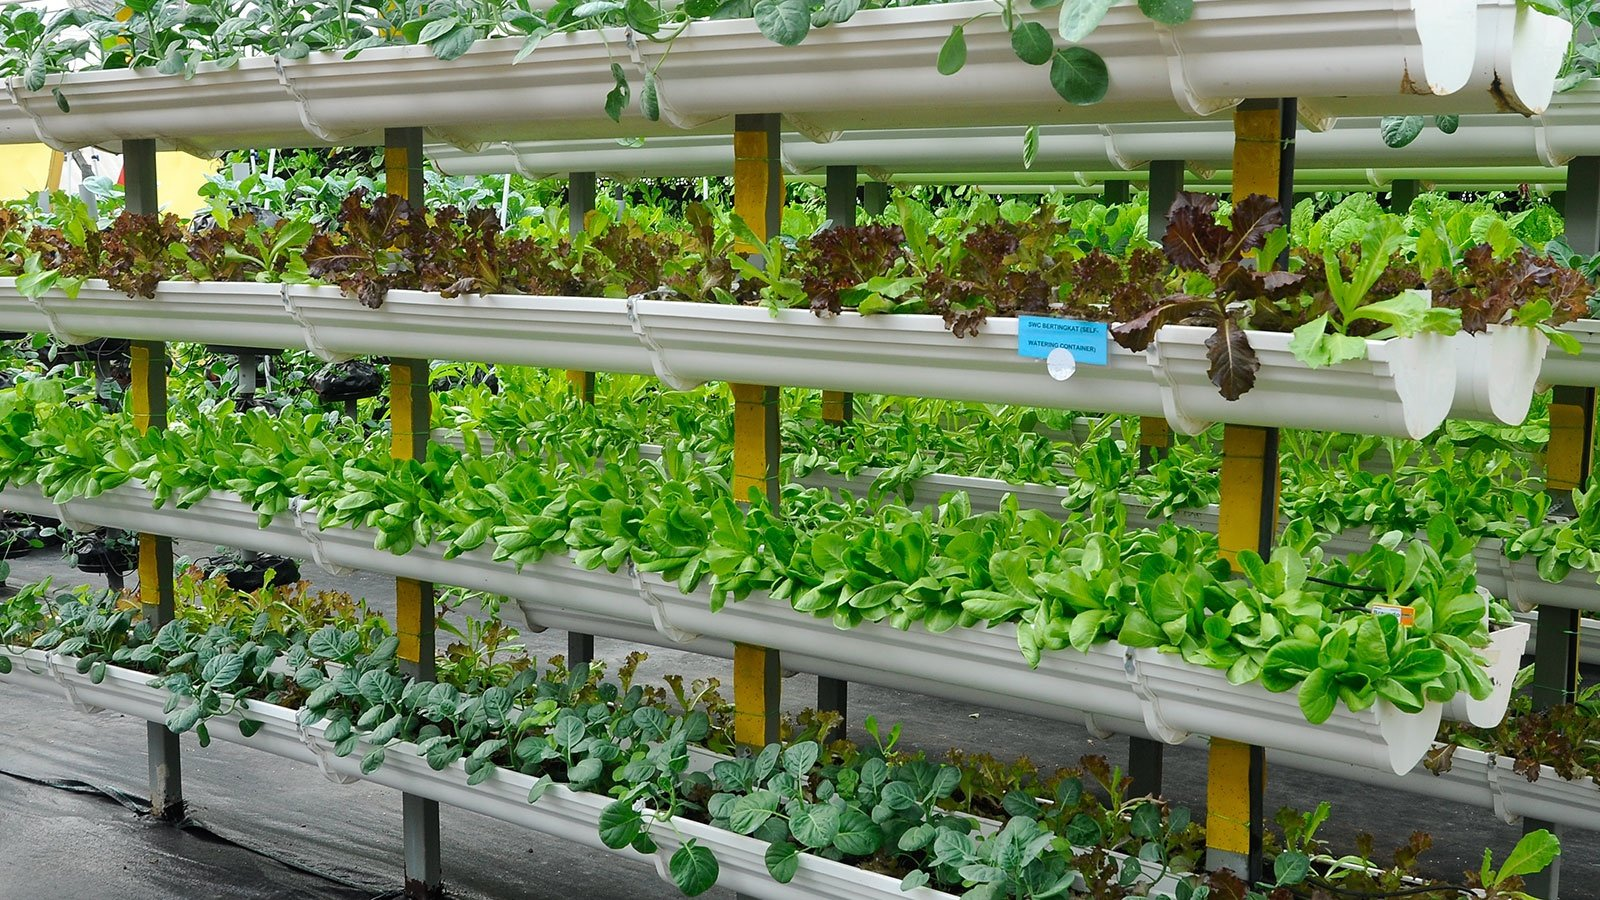 Vegetables Are Grown Using Fertigation System